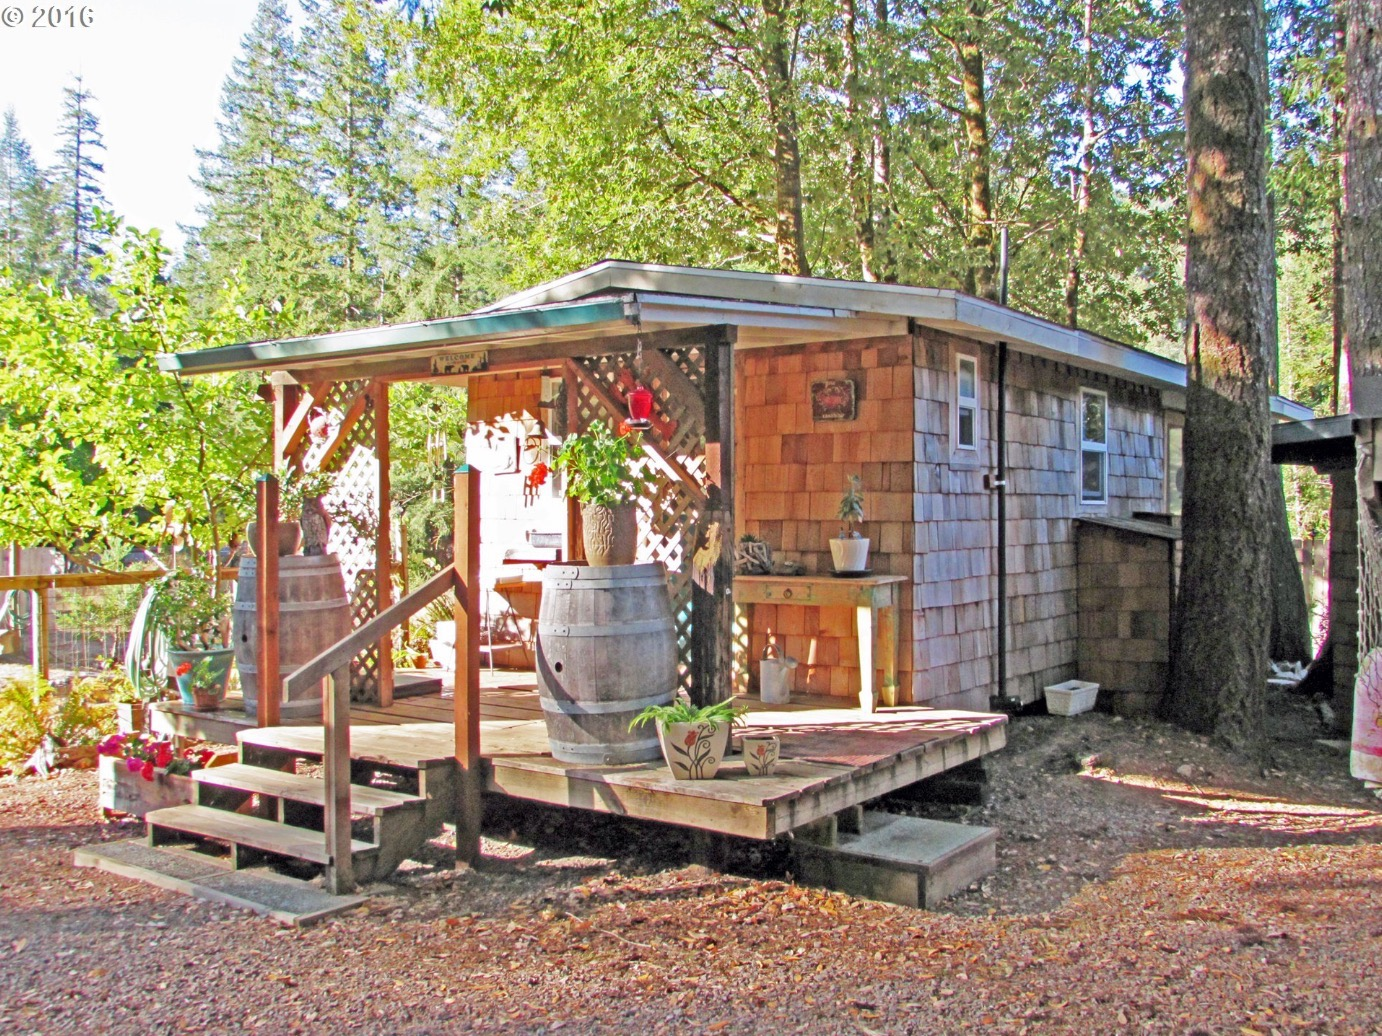 216 sq ft tiny forest cabin in oregon for Cabins near portland oregon